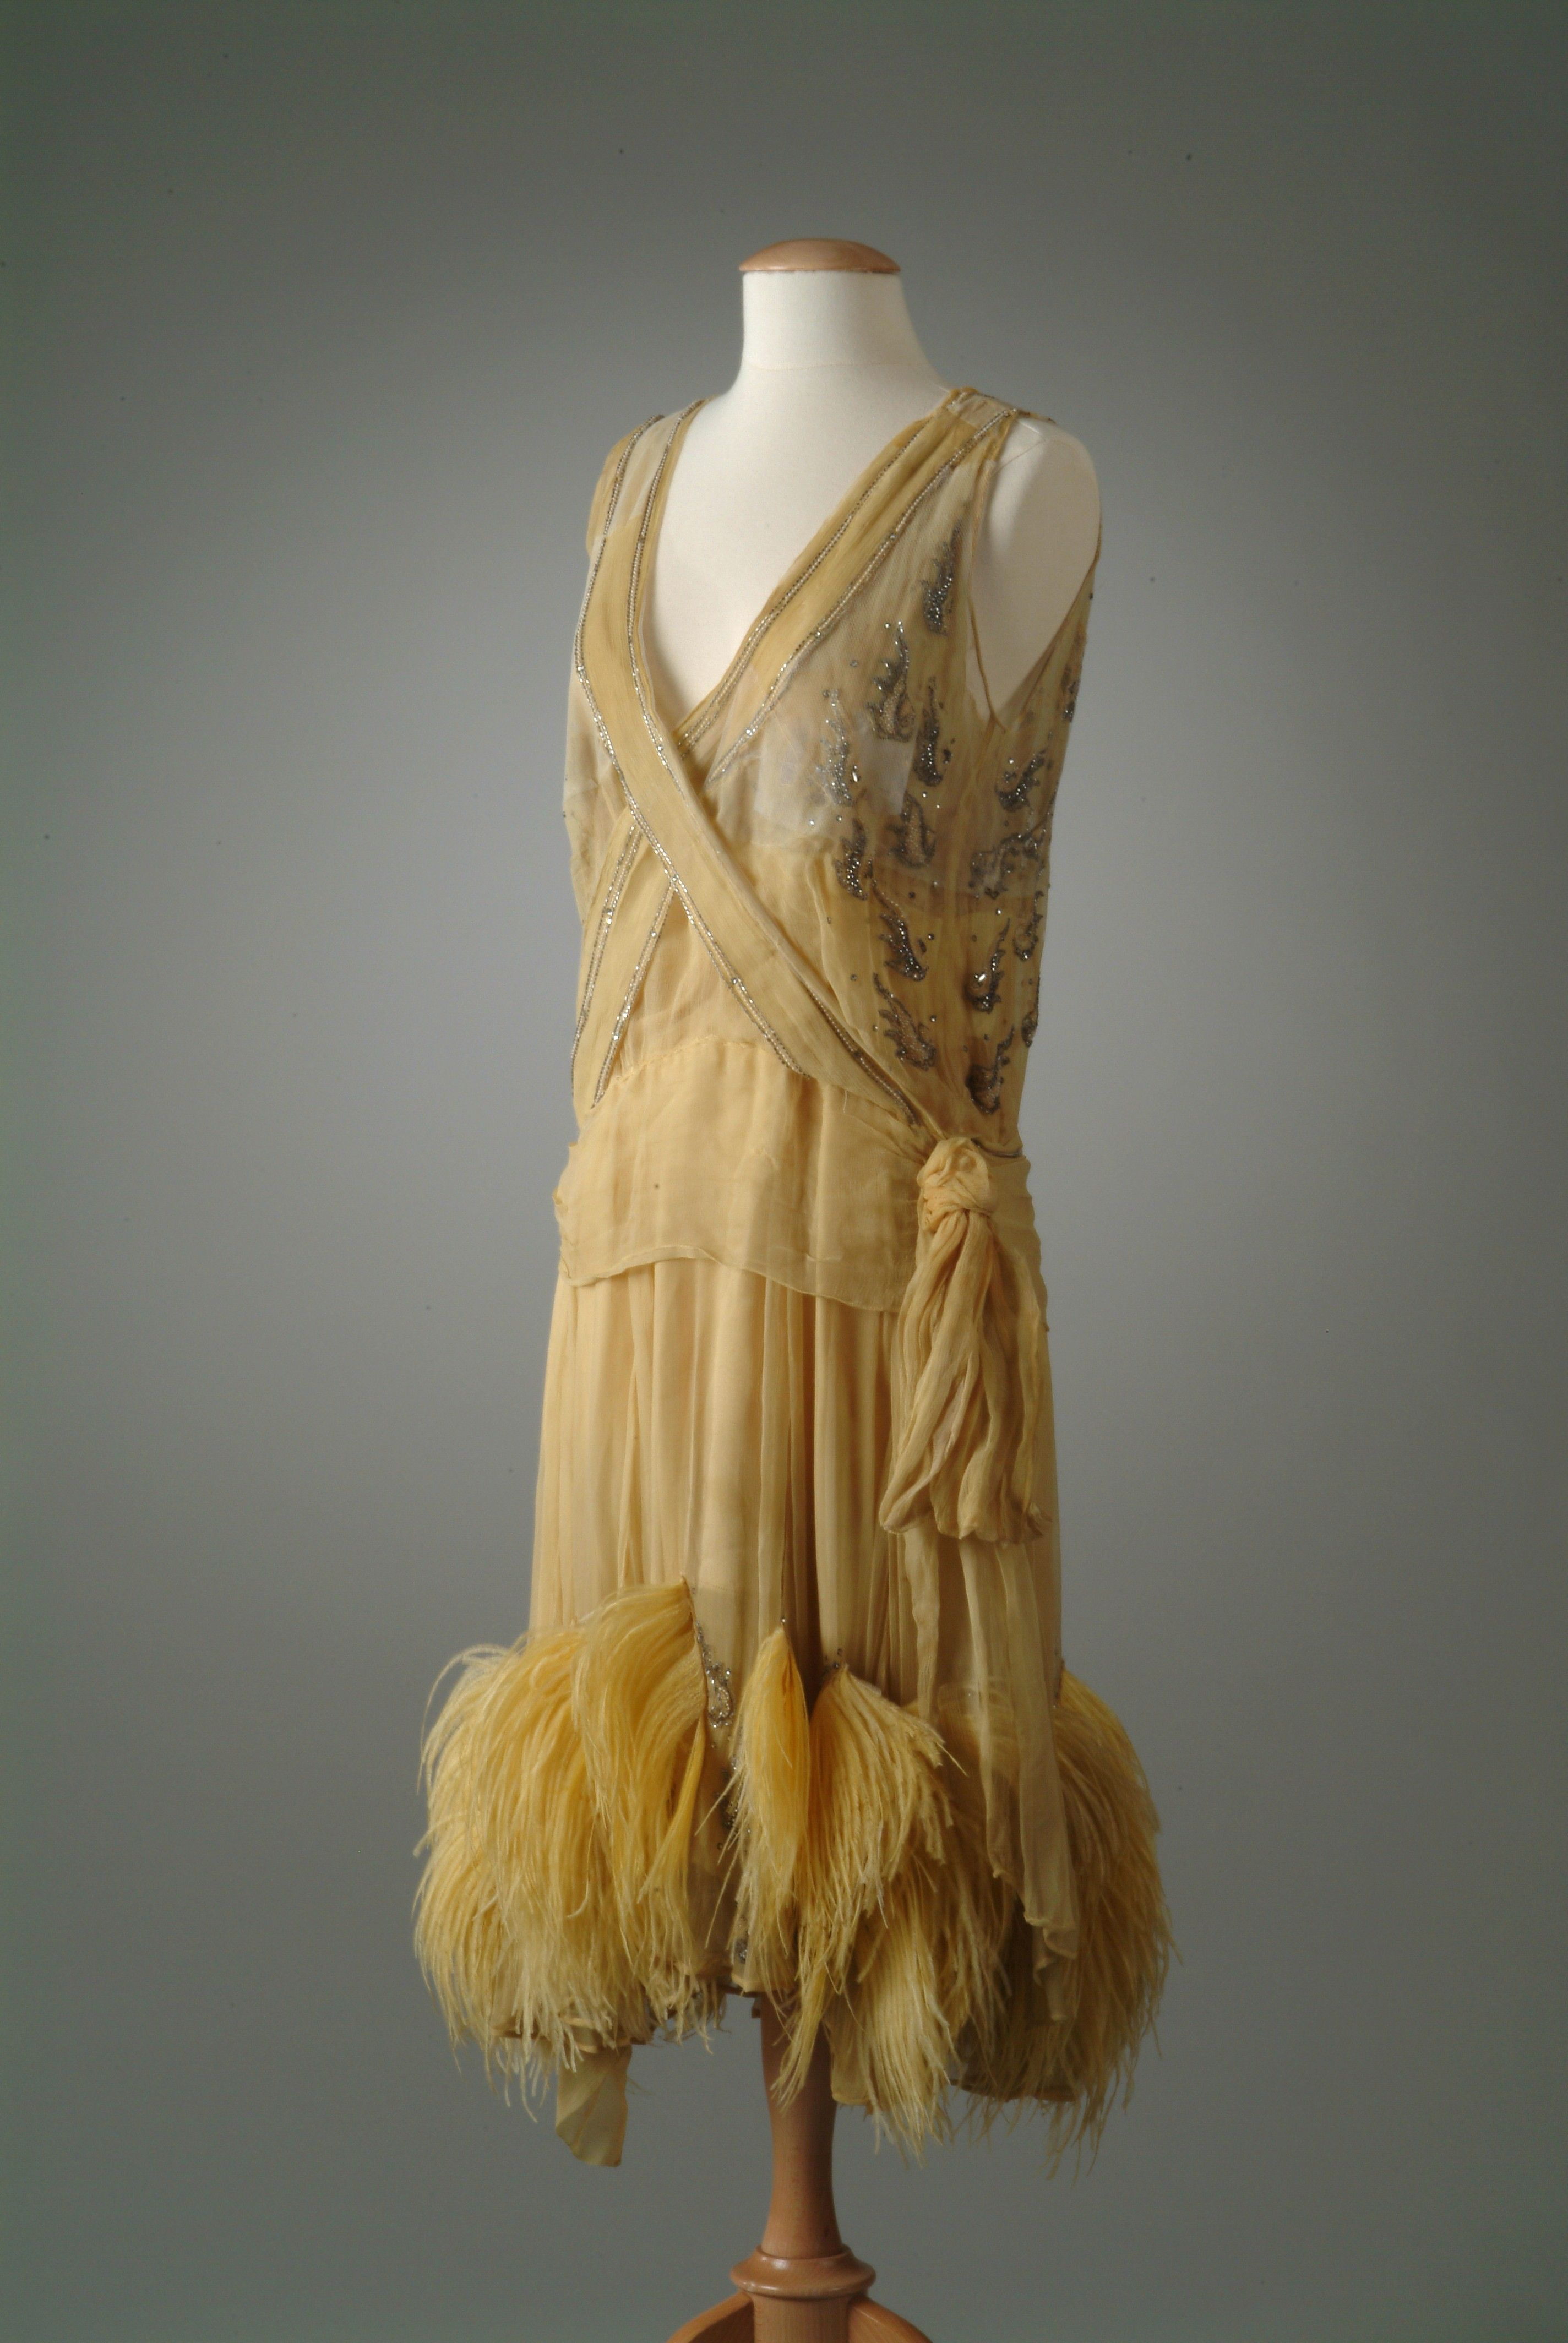 Evening gown (front)   1927   Saffron yellow silk chiffon. A criss-cross effect on the bodice is achieved with edging of rhinestones and seed pearls. Gussets on the skirt are accented with yellow ostrich feathers and beads.   Meadow Brook Hall Historic Costume Collection